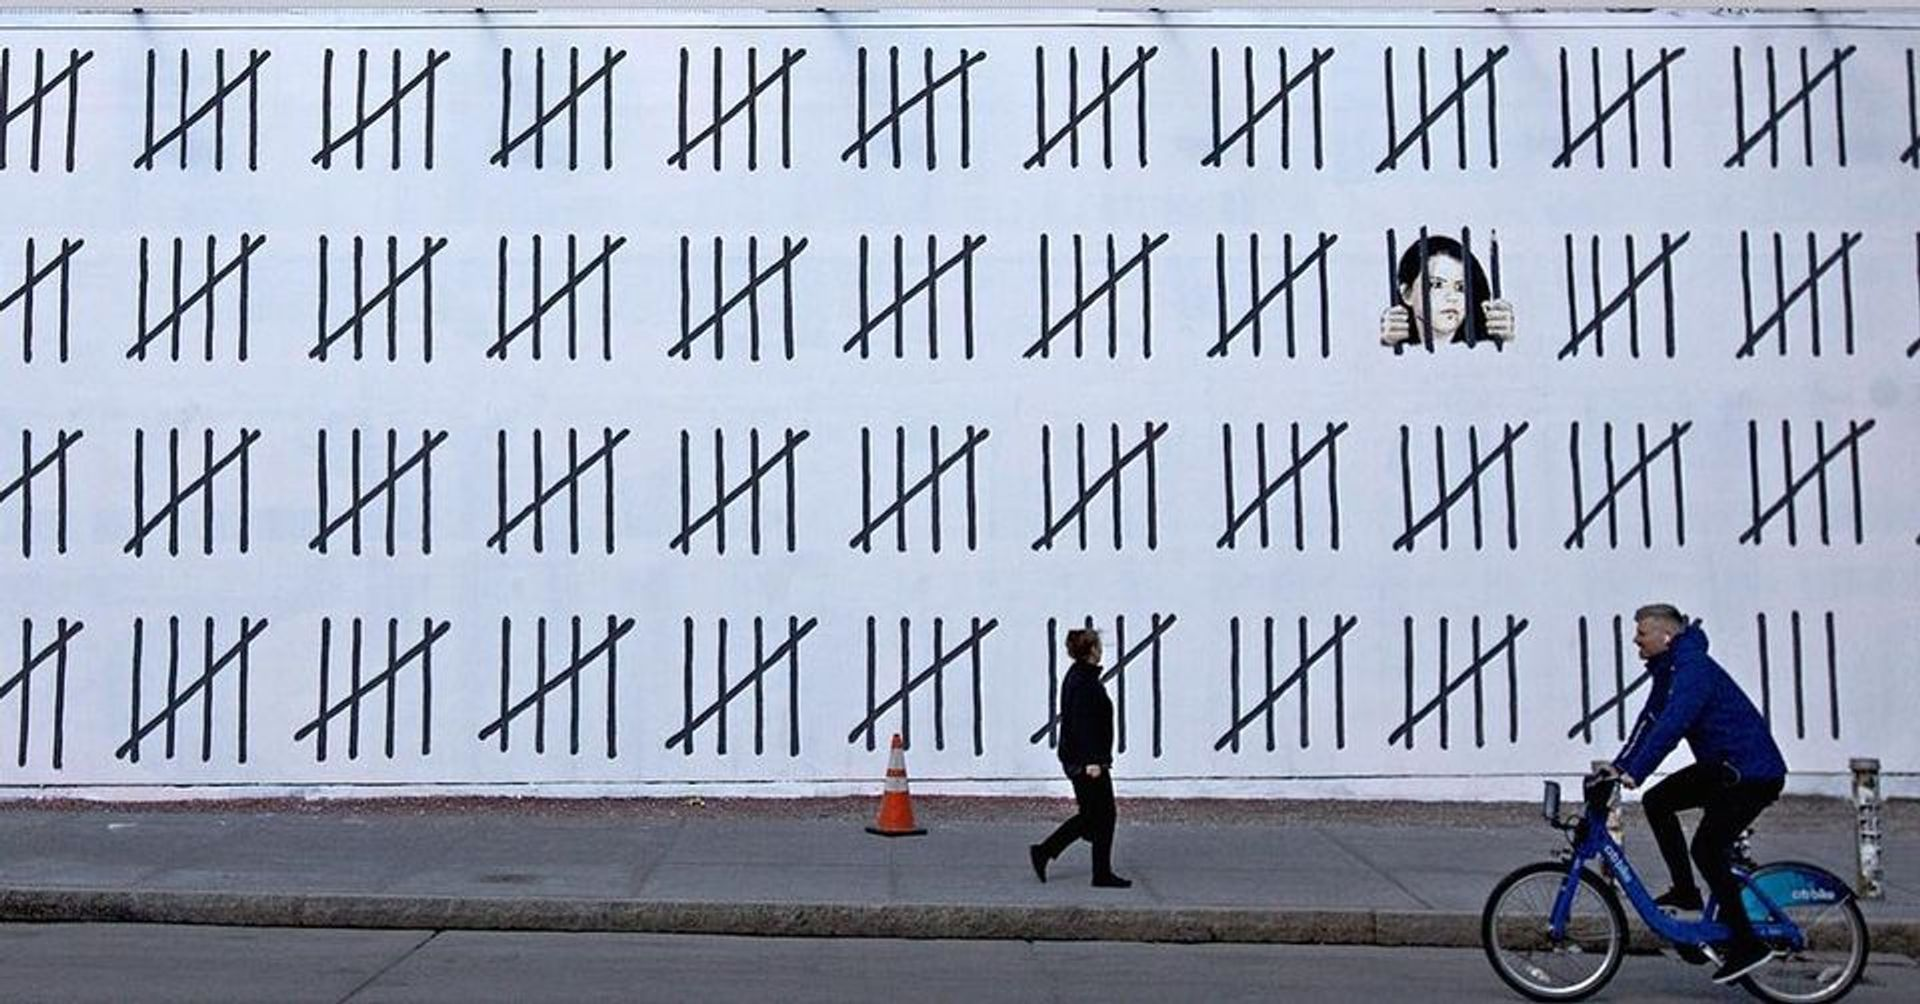 In March, Banksy and the graffiti artist Borf unveiled a 70ft mural in New York protesting against Dogan's arrest varius